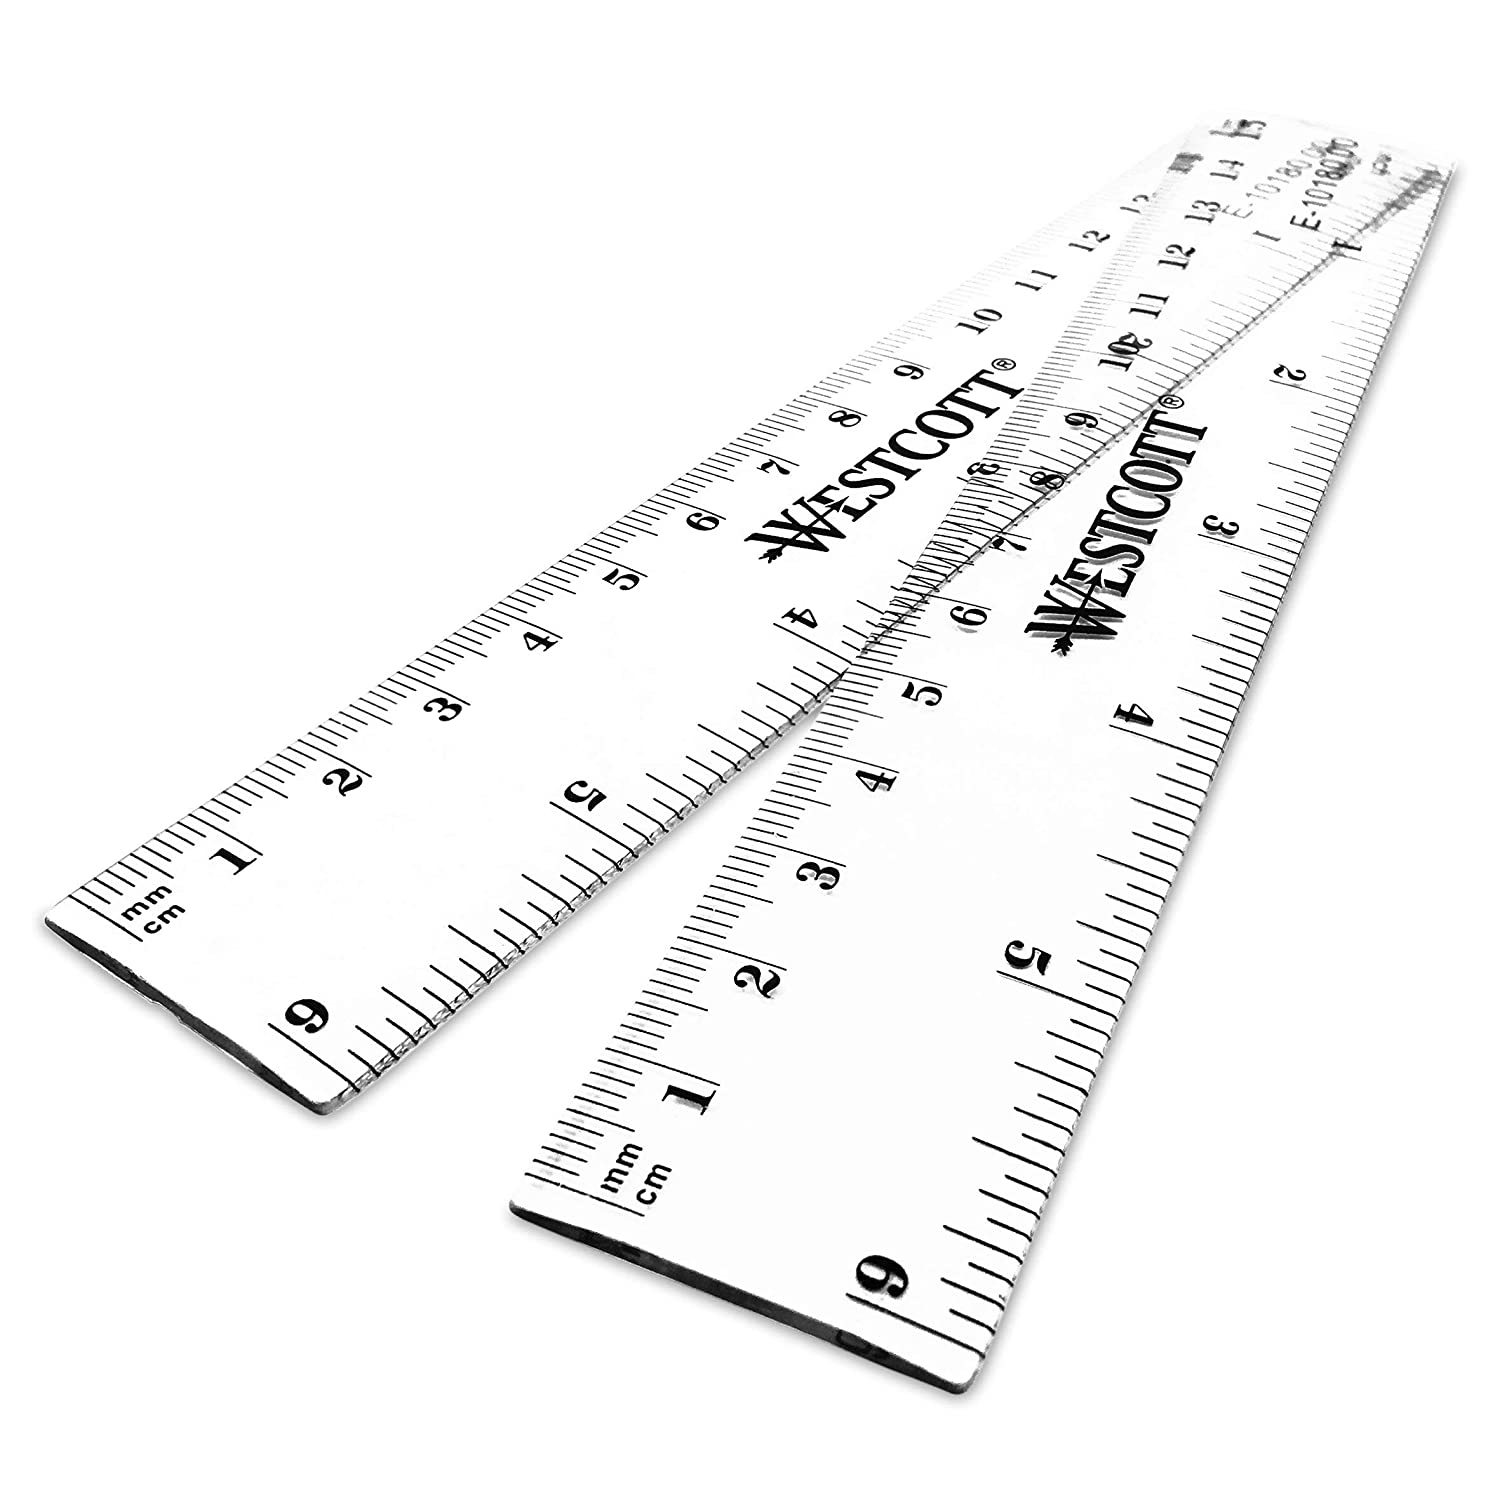 Helix 30cm//12 Inch Clear Plastic Rulers Singles Or Pack of 10